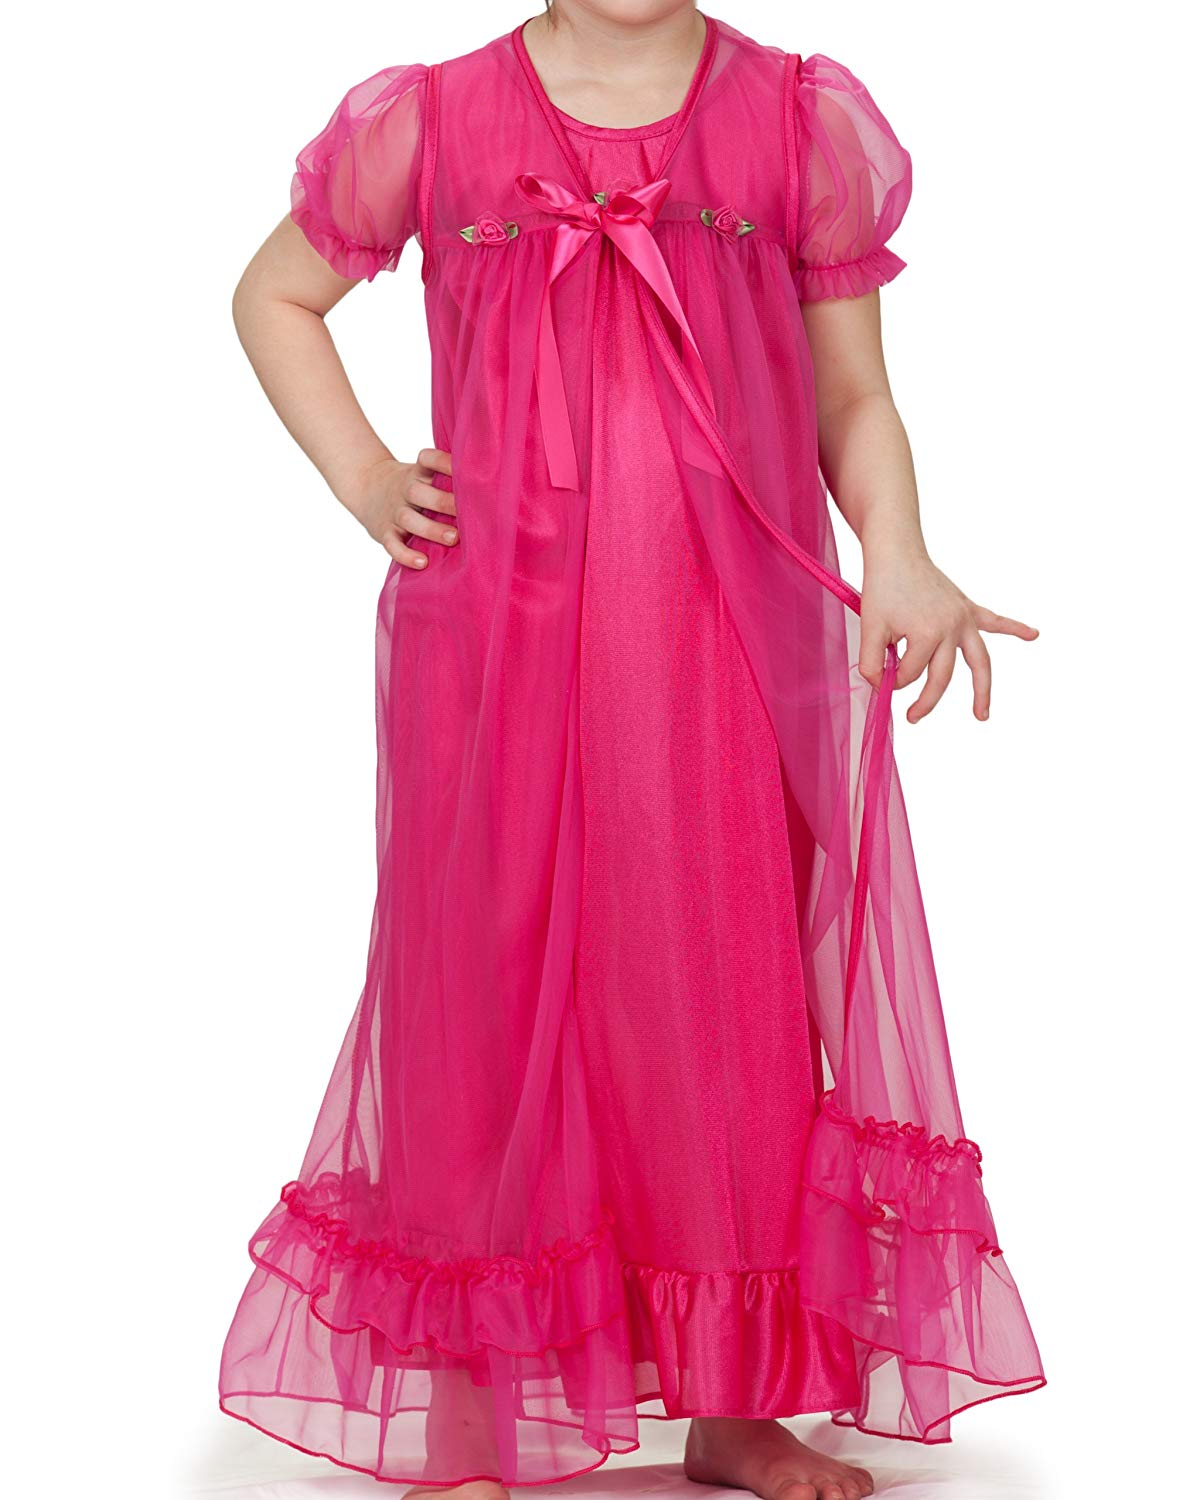 fa3d89d805 Laura Dare Big Girls Short Sleeve Peignoir Nightgown Robe Set w Scrunchie